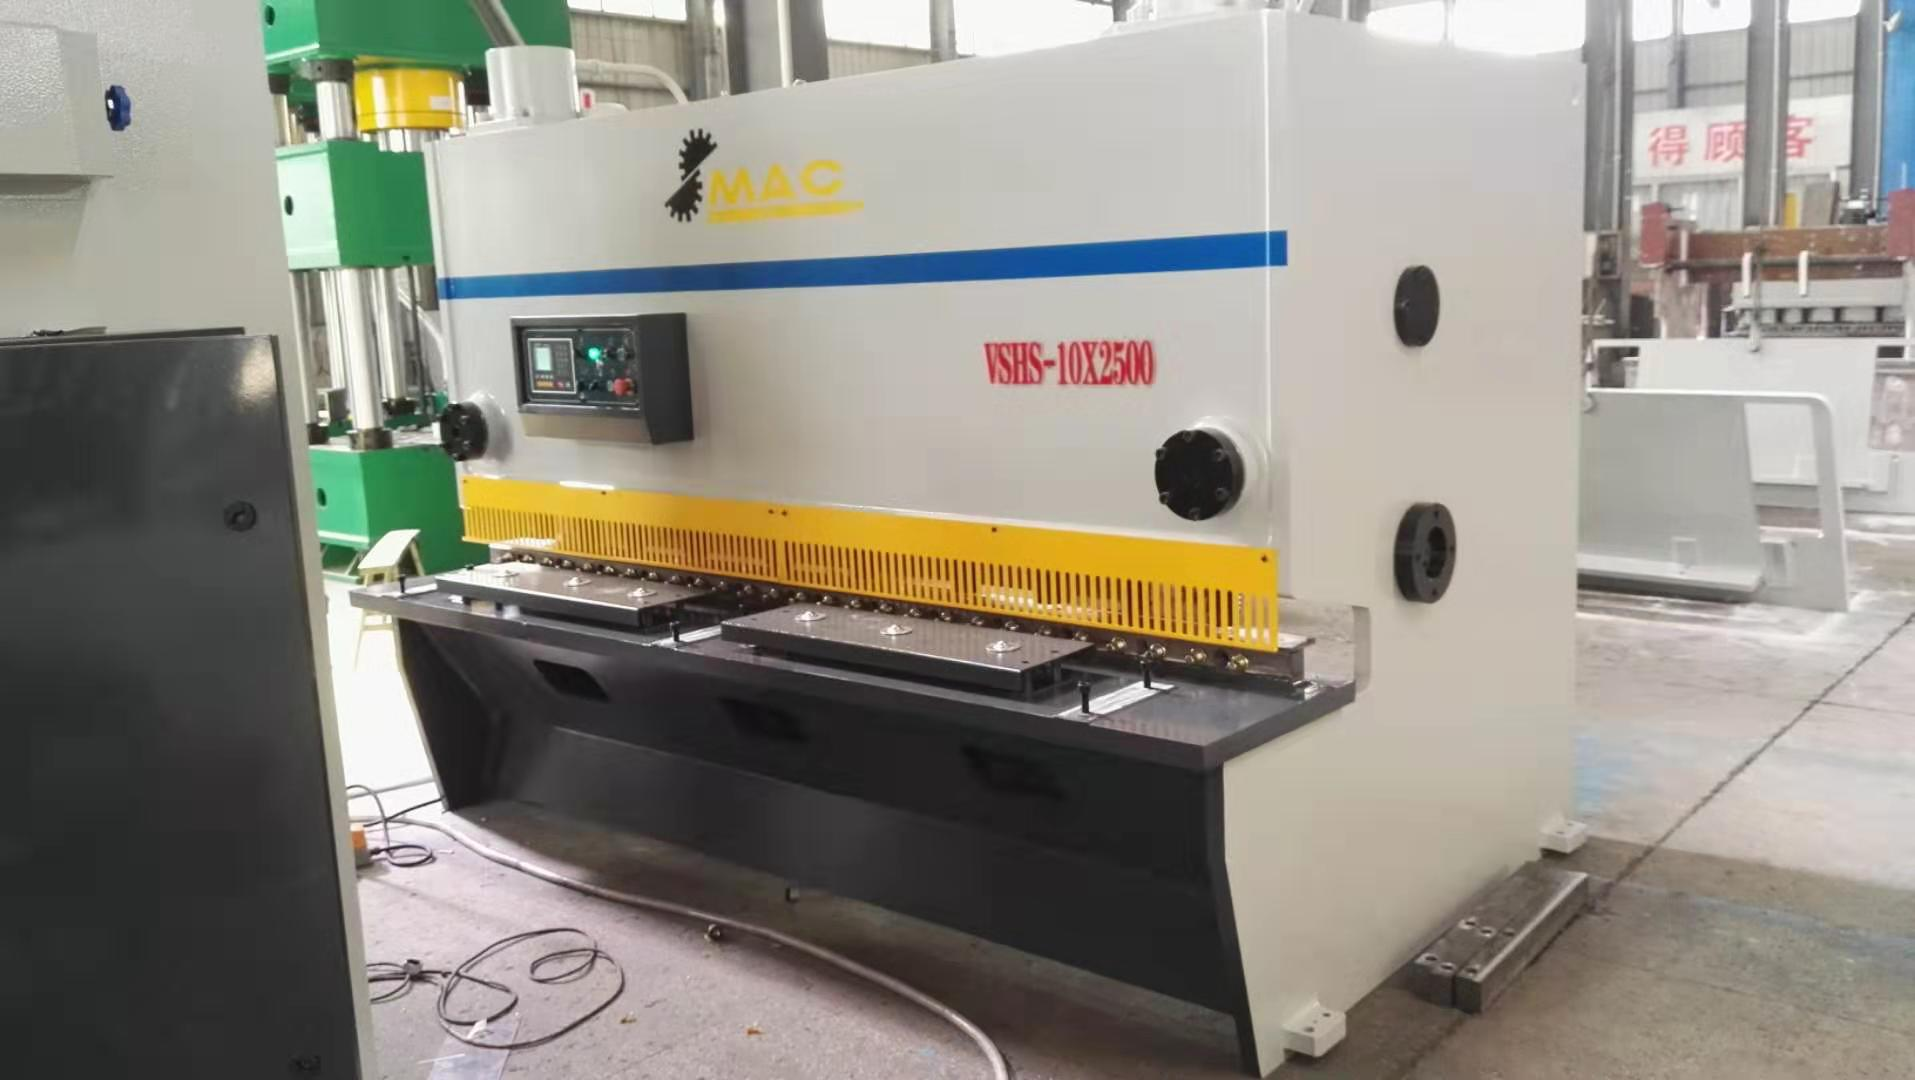 Different model of shearing machine and press brake